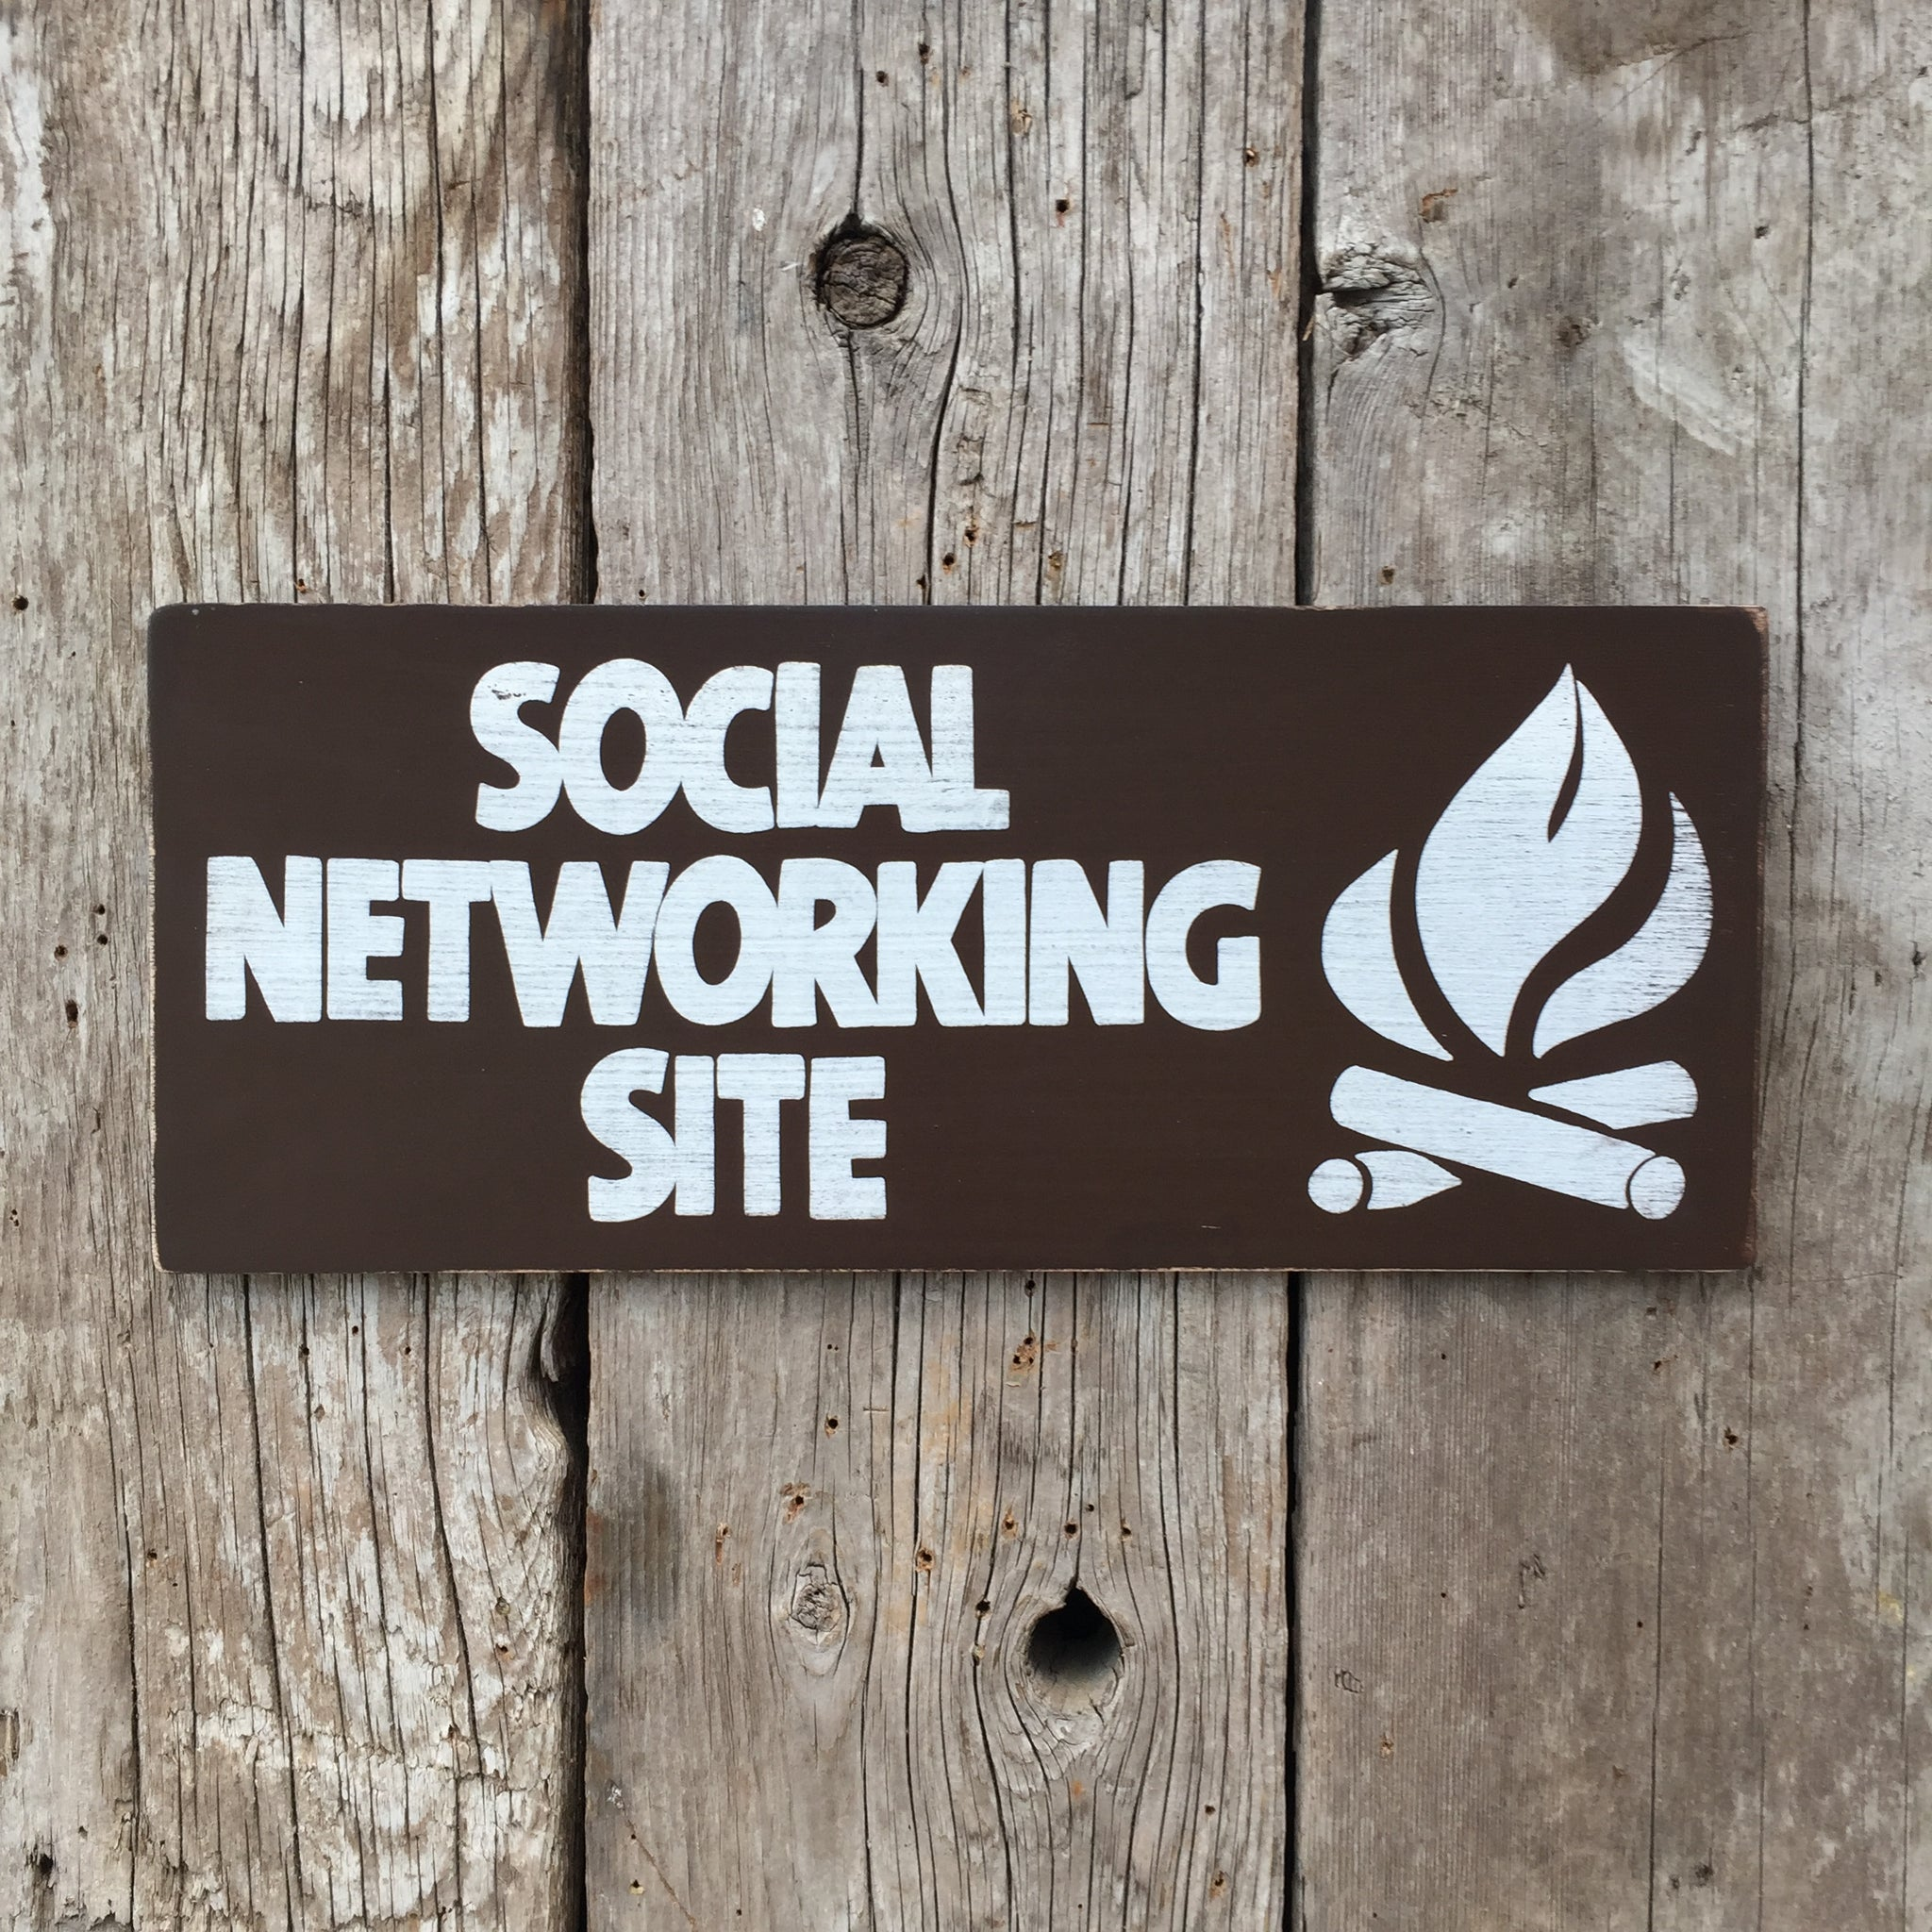 Handmade Vintage Social Networking Site Campfire Sign